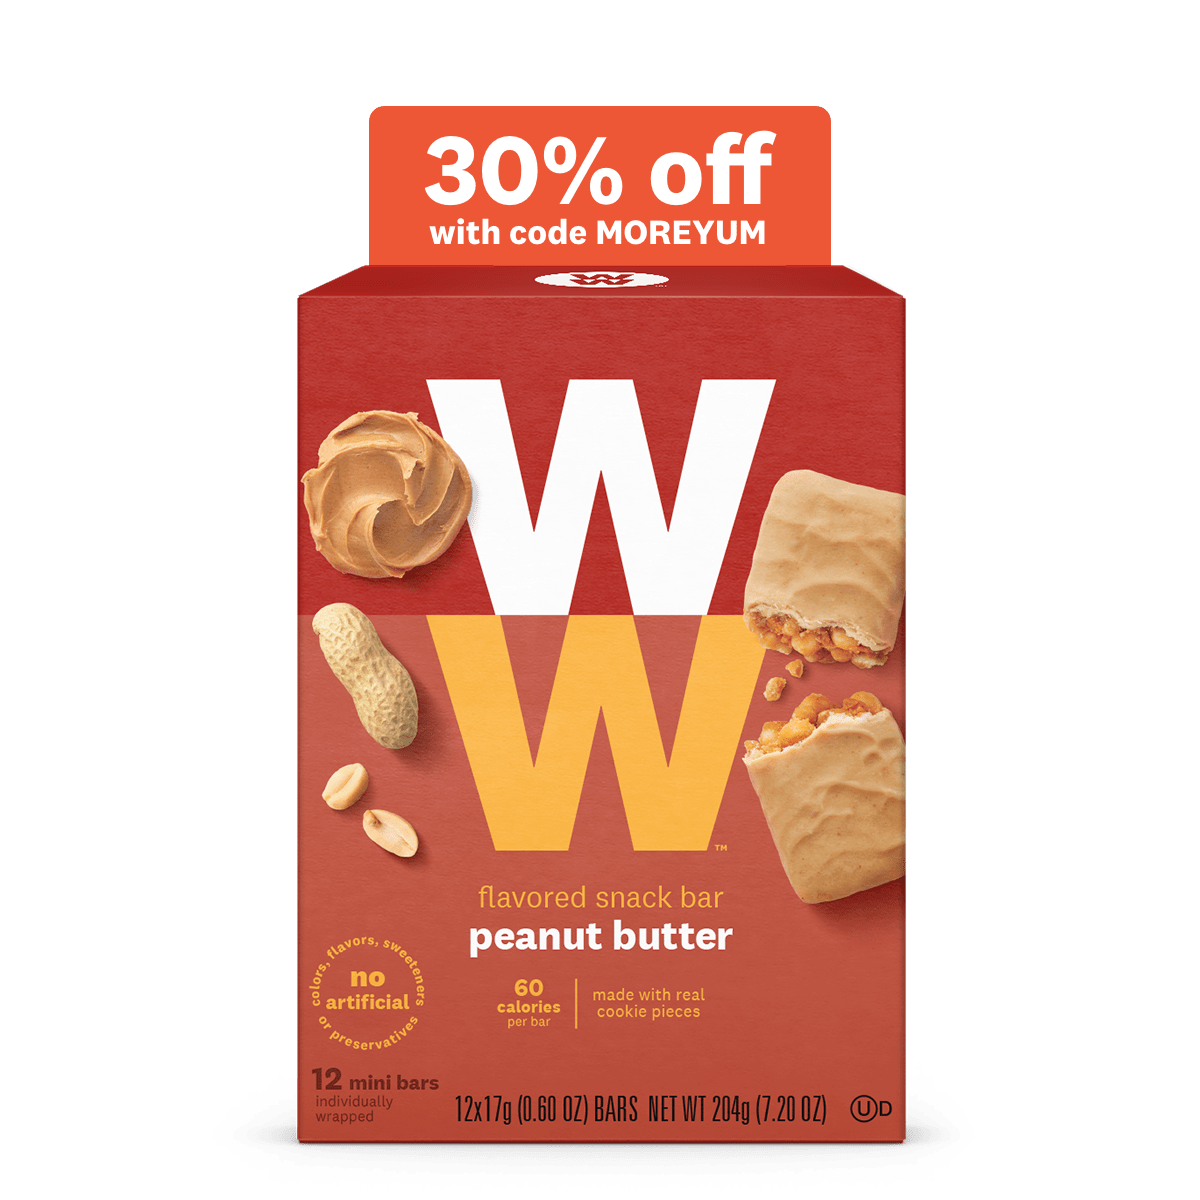 Peanut Butter Mini Bar Value Pack (36 Individually wrapped Bars) 2 points, 60 calories per bar, no artificial flavors, colors, sweeteners, or preservatives. kosher.